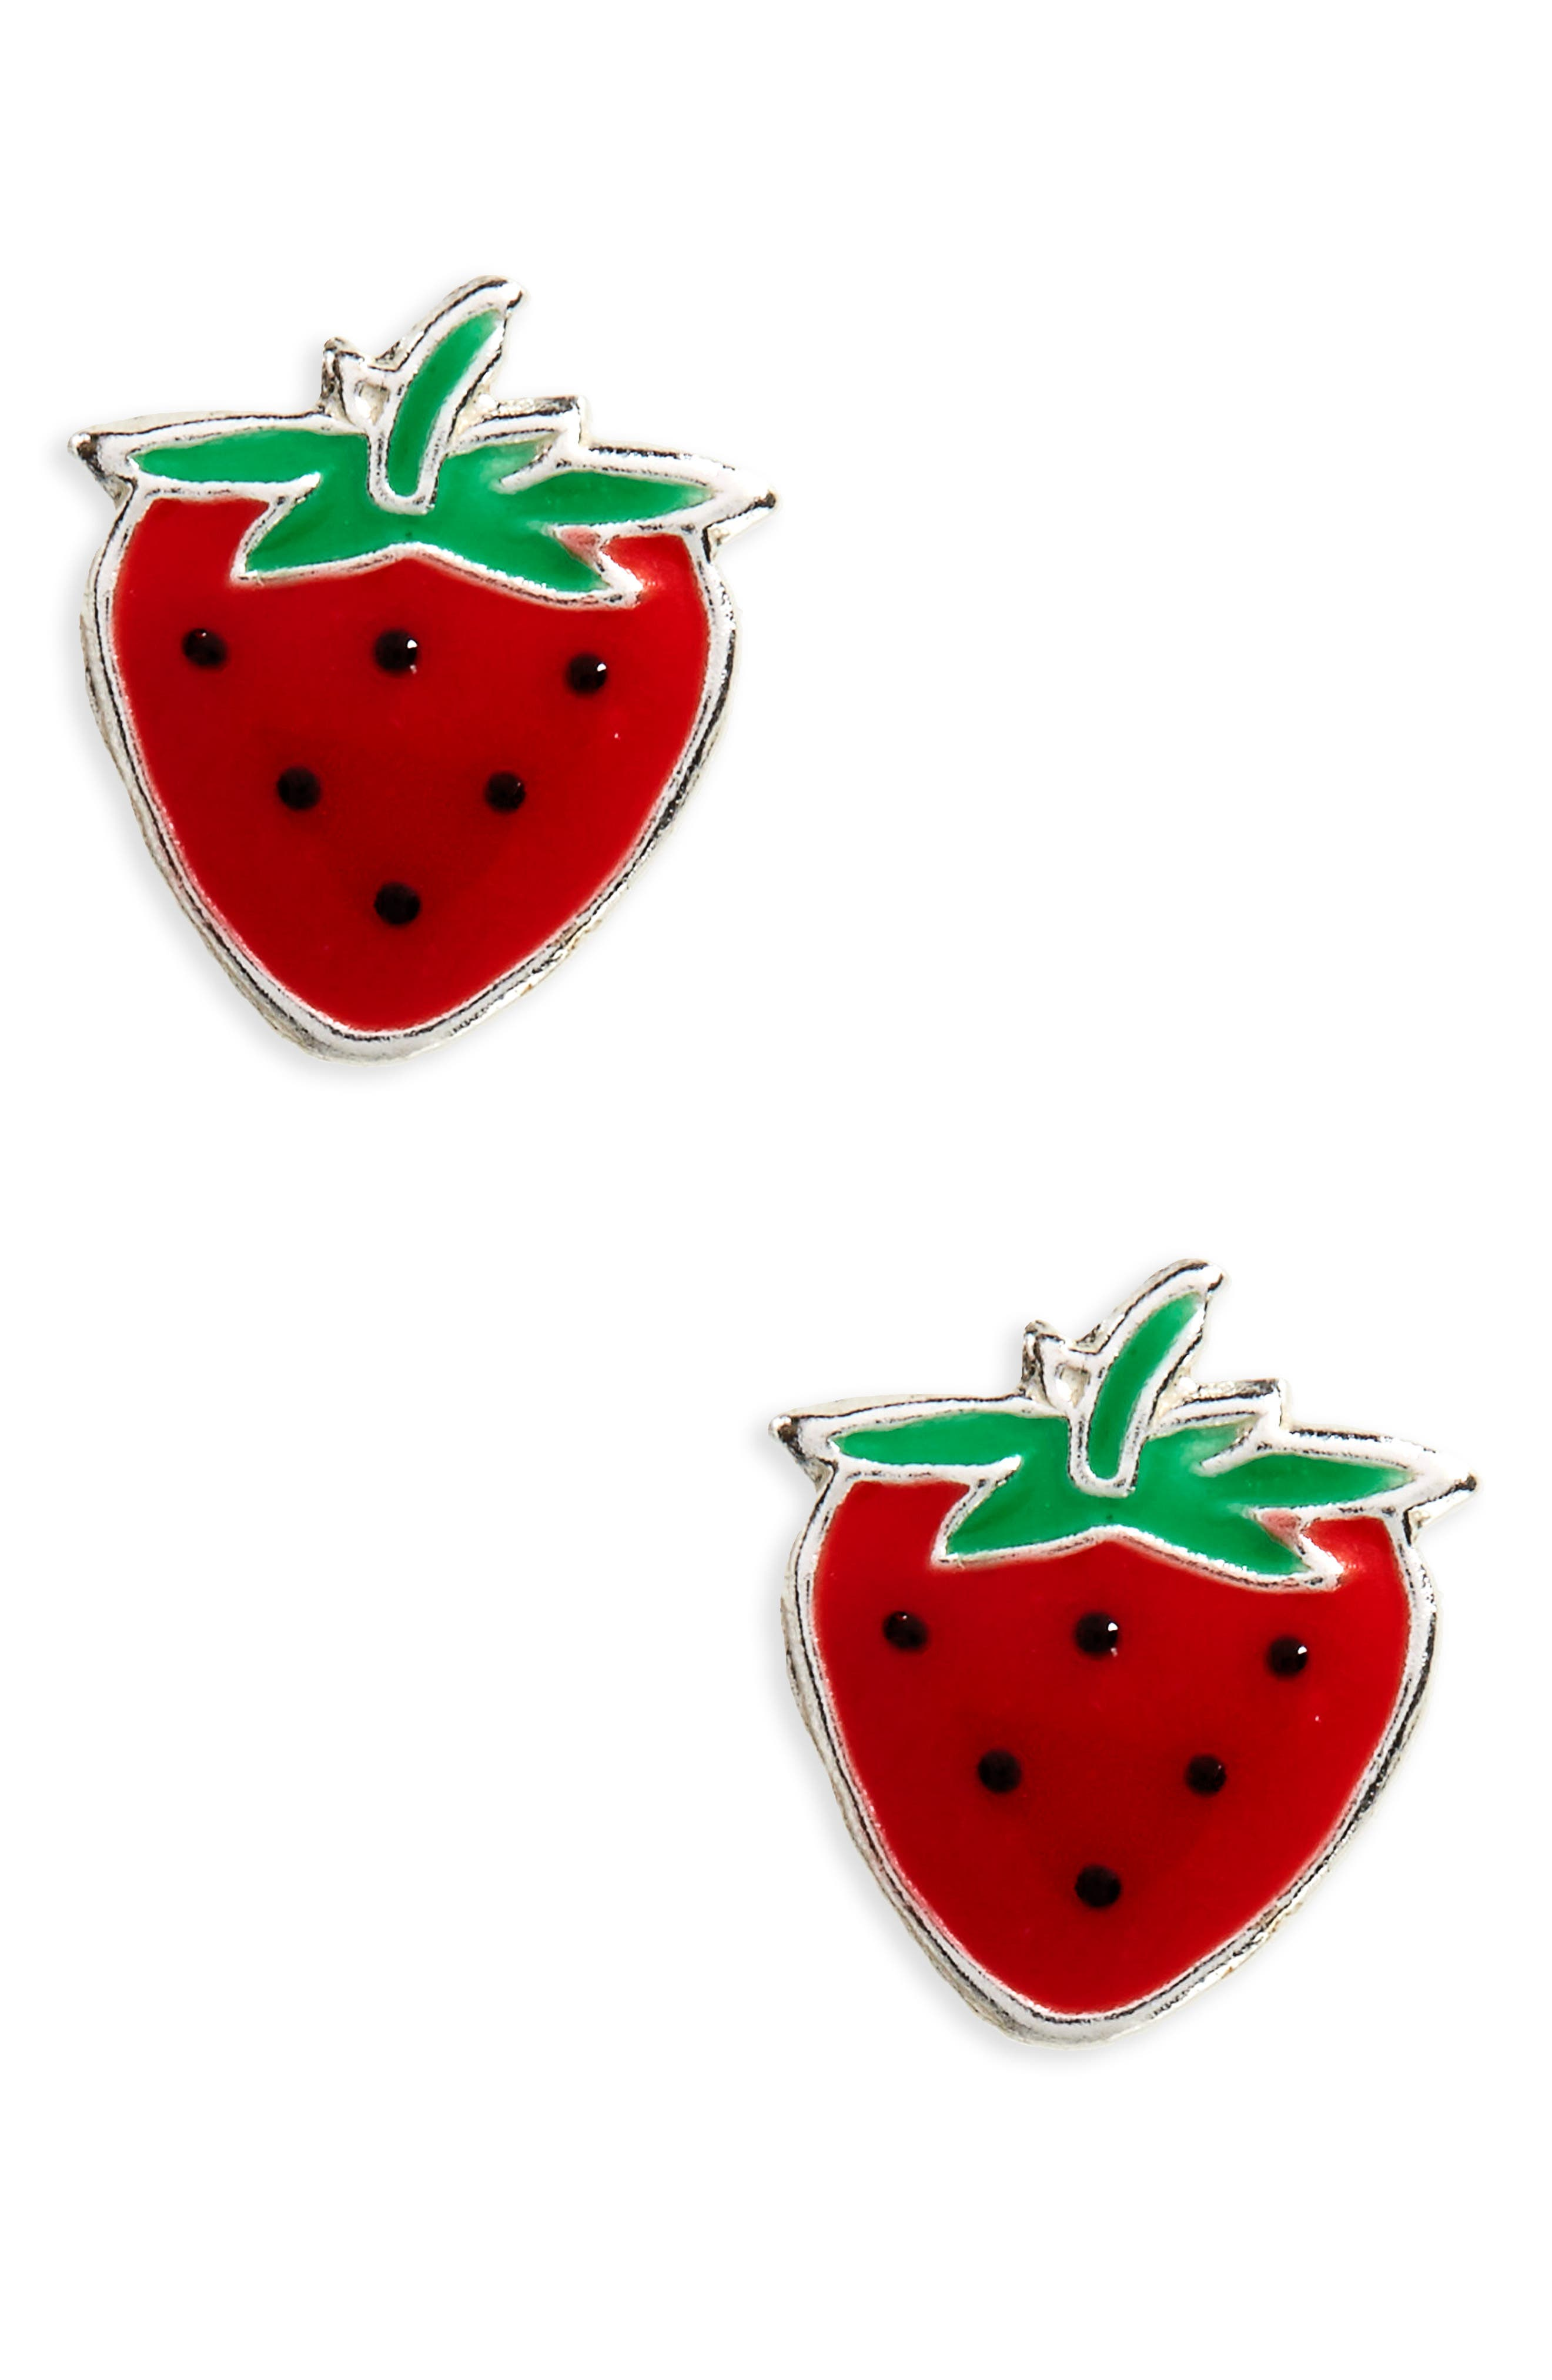 Strawberry Sterling Silver Stud Earrings,                         Main,                         color, Red/ Green